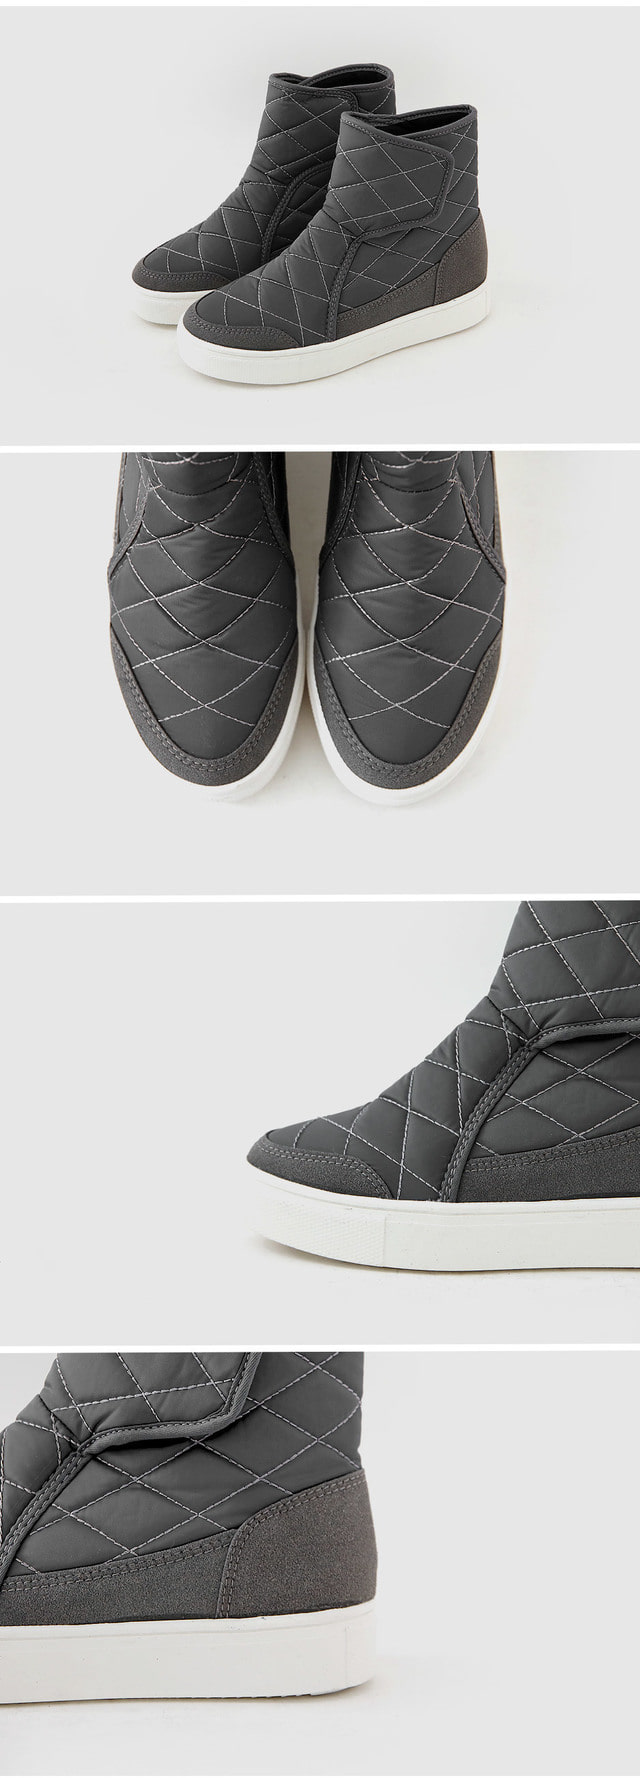 Quilt Velcro Padded Boots 3cm